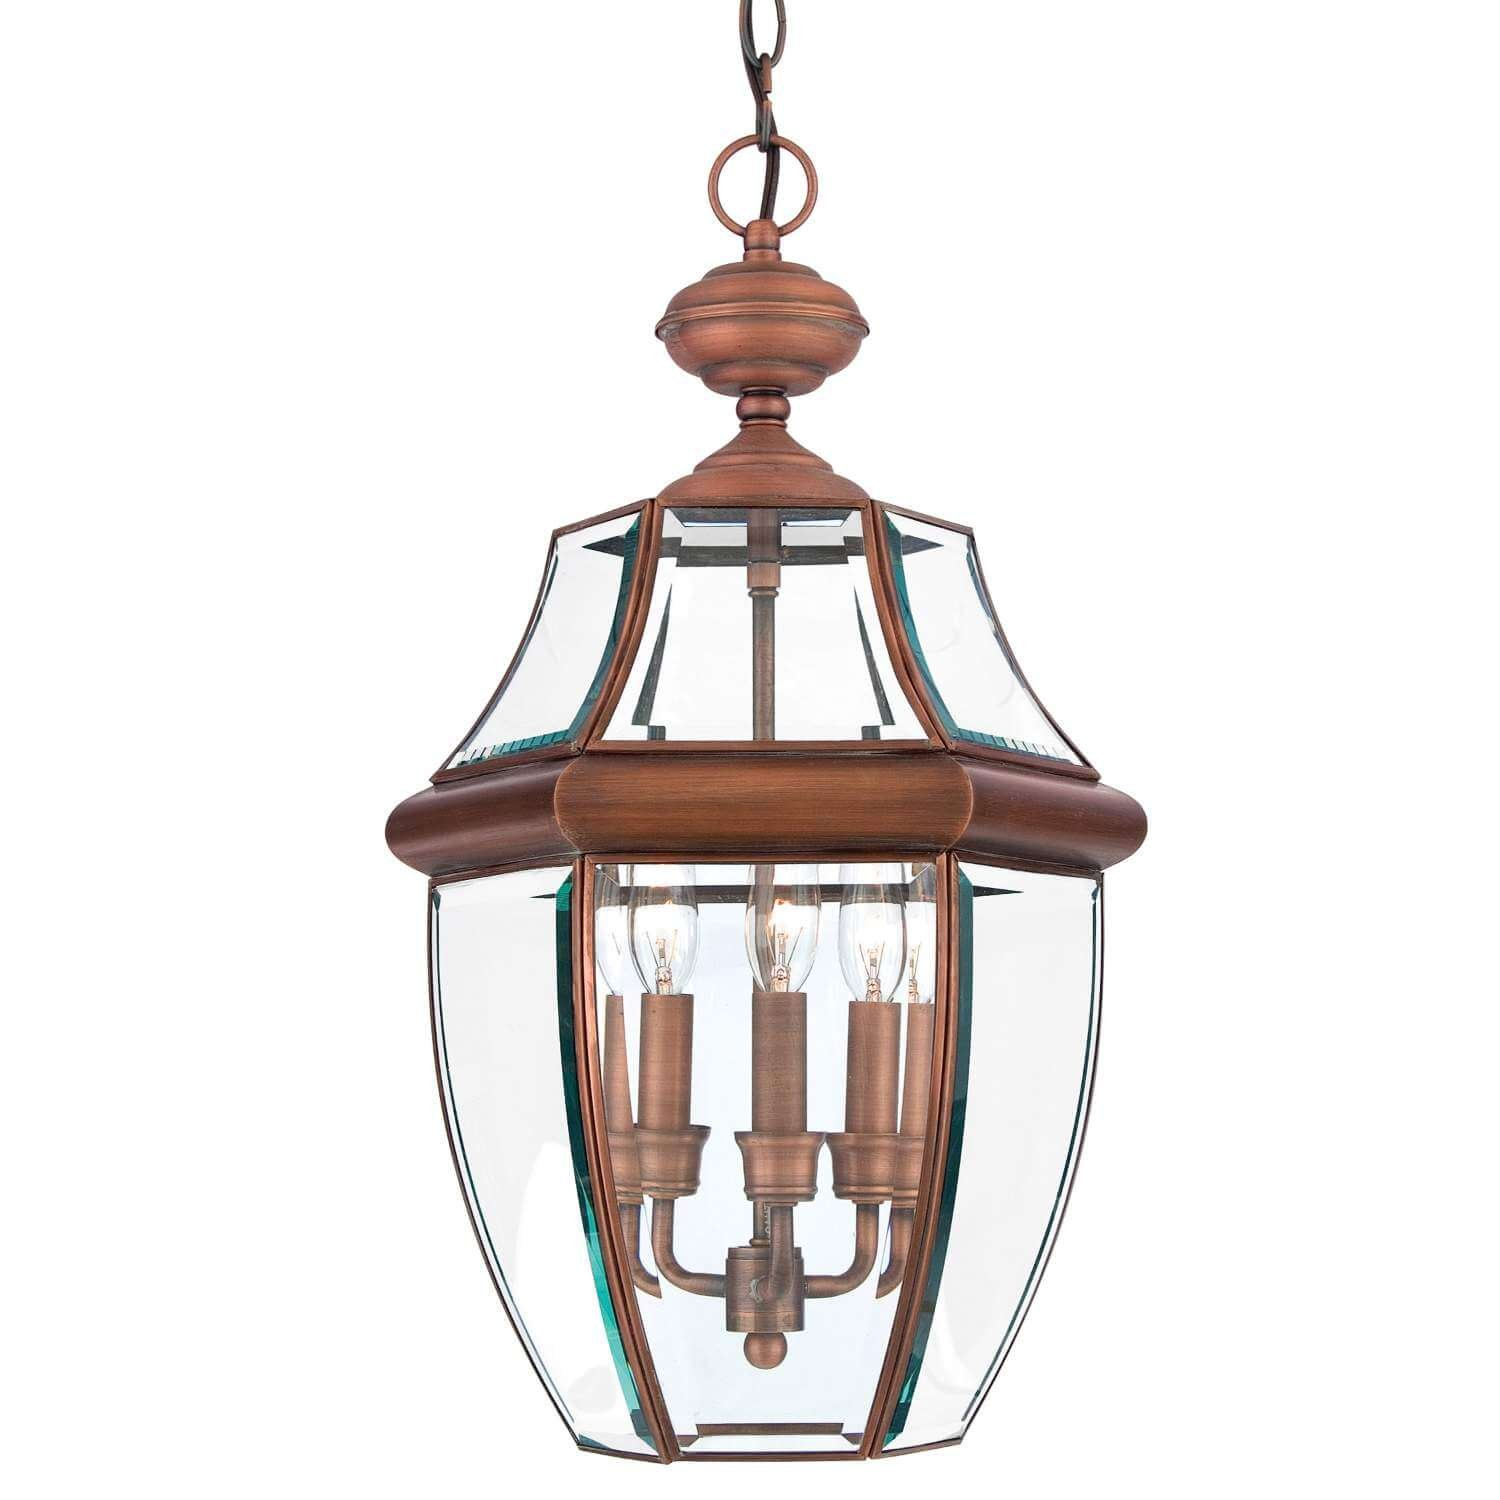 Bidwell Lighting Yahi 21'' Tall 3 Light Outdoor Pendant - Aged Copper